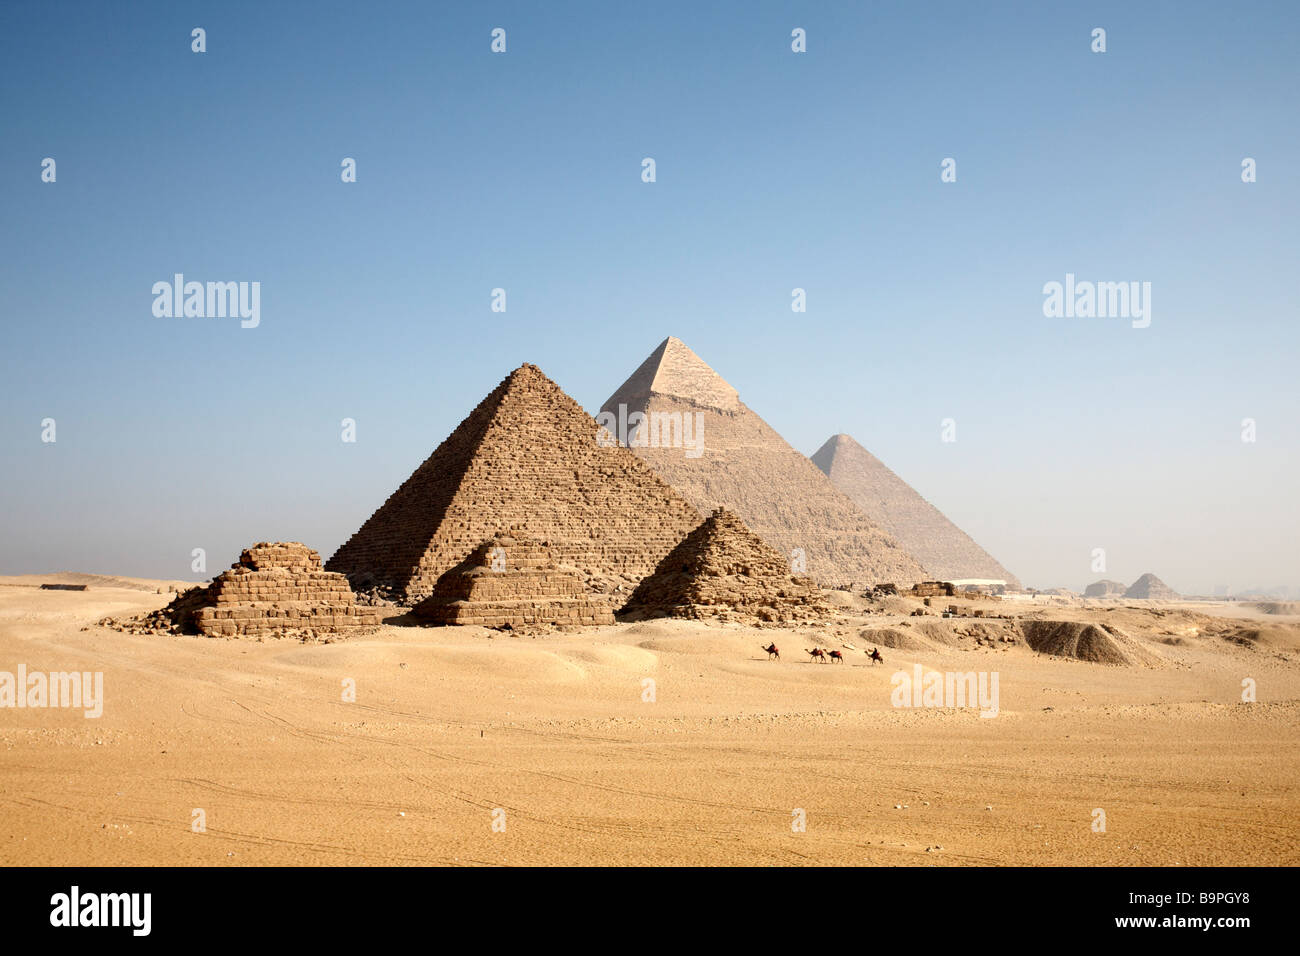 Camels approach the Giza pyramids. - Stock Image